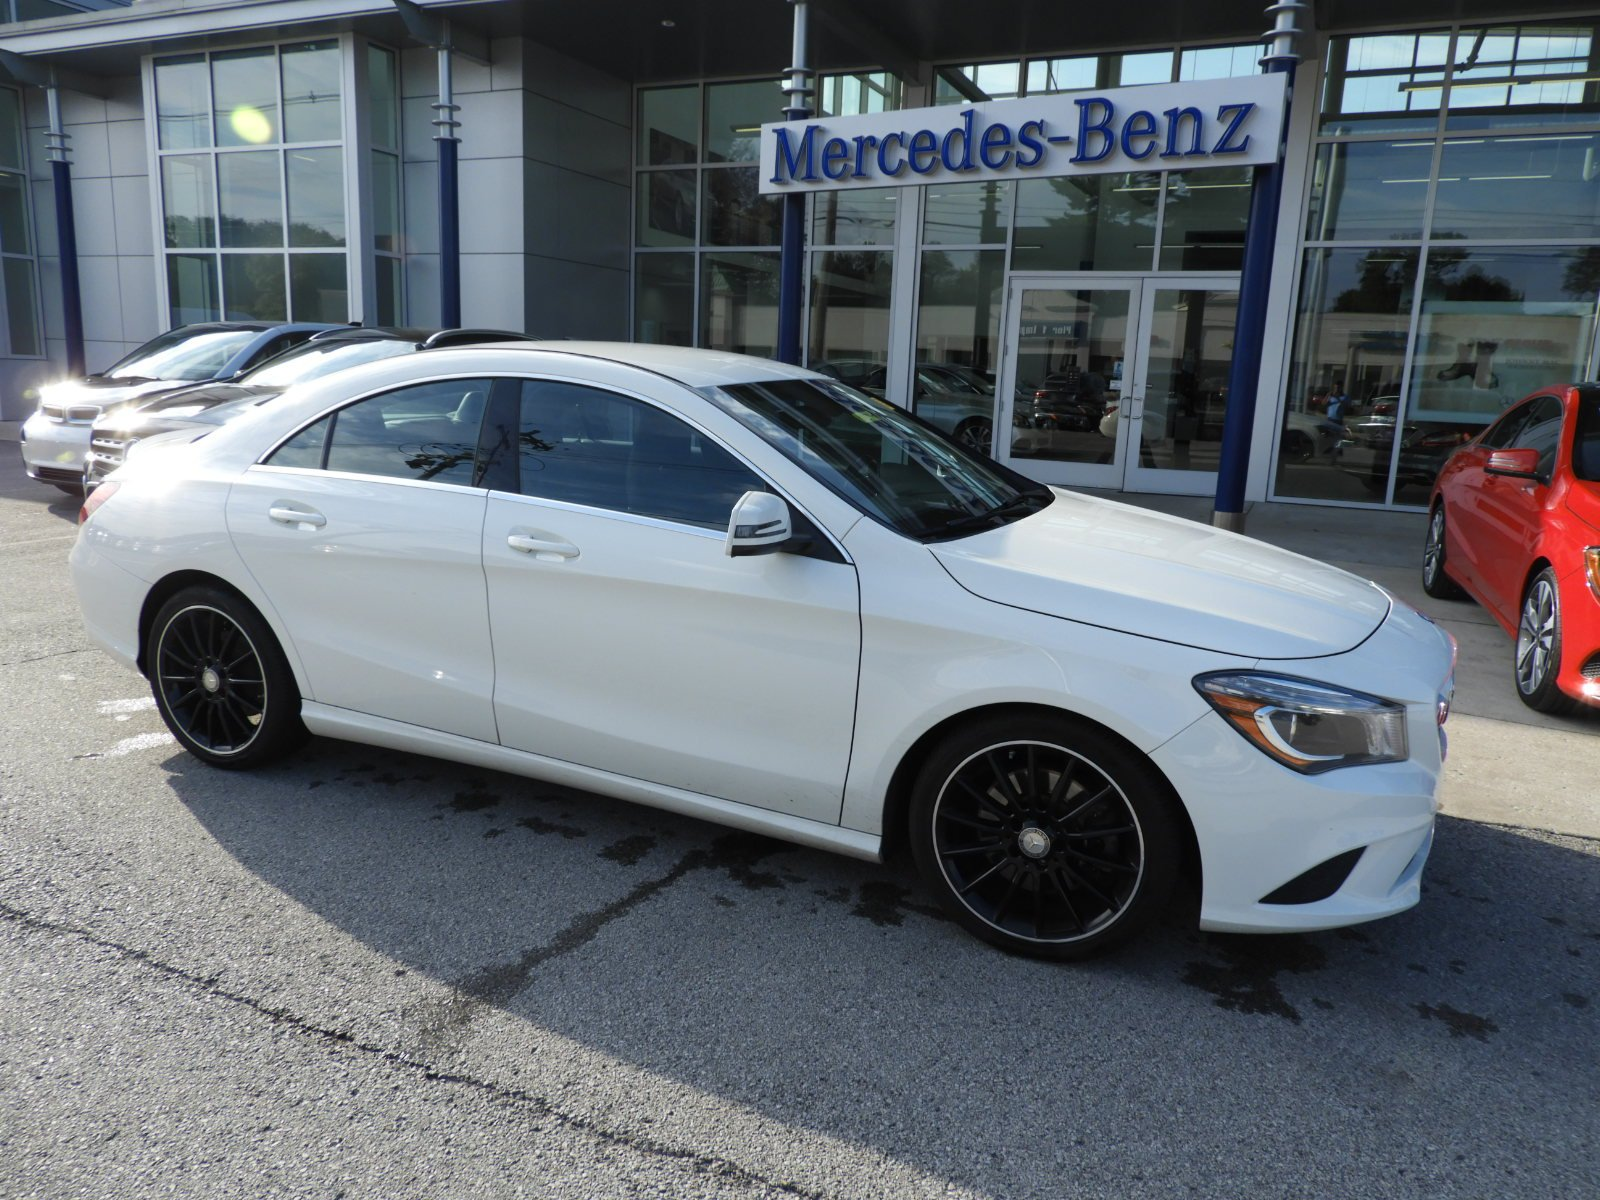 Certified Pre Owned 2014 Mercedes Benz CLA CLA 250 4MATIC® 4 Door